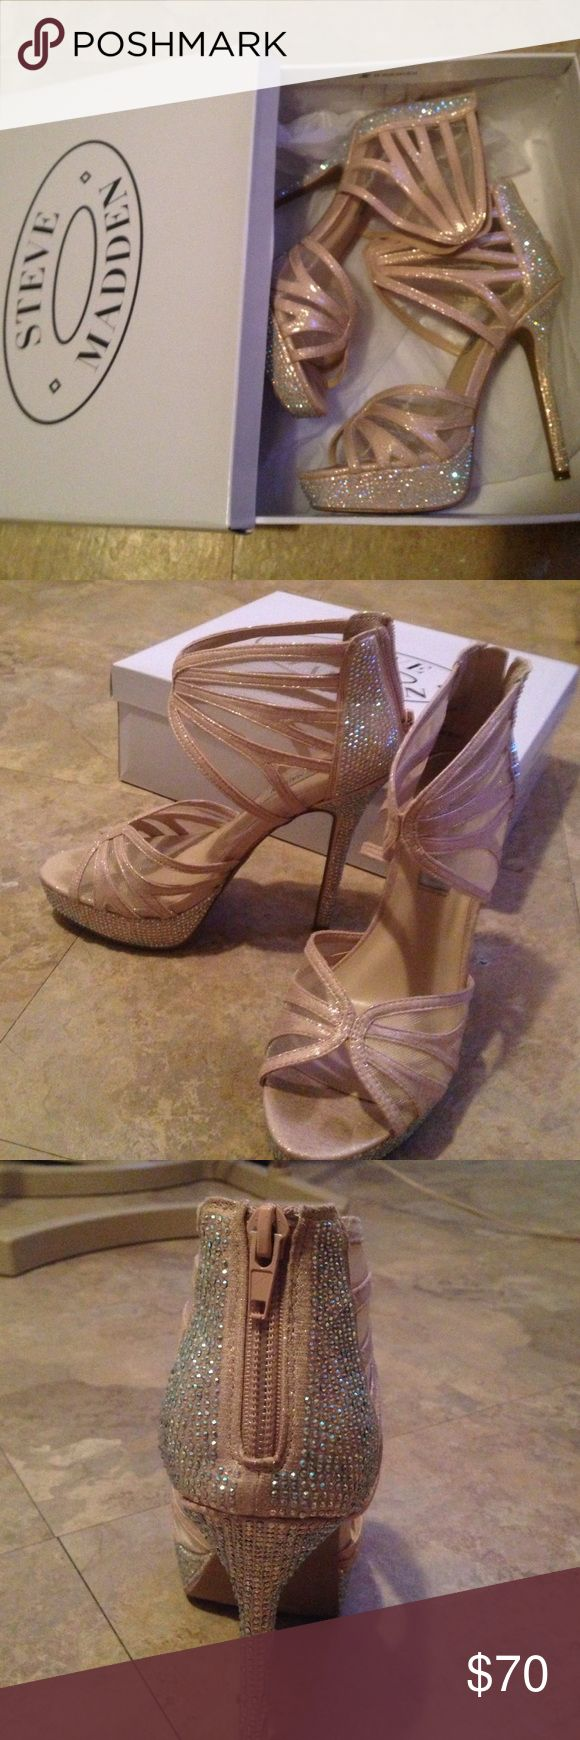 "Steve Madden ""Glitzy Blush"" prom heels I'd hate to get rid of them but I know I'll never have anywhere to wear them to again worn once for prom, gorgeous. Same color as the dress Steve Madden Shoes Heels"